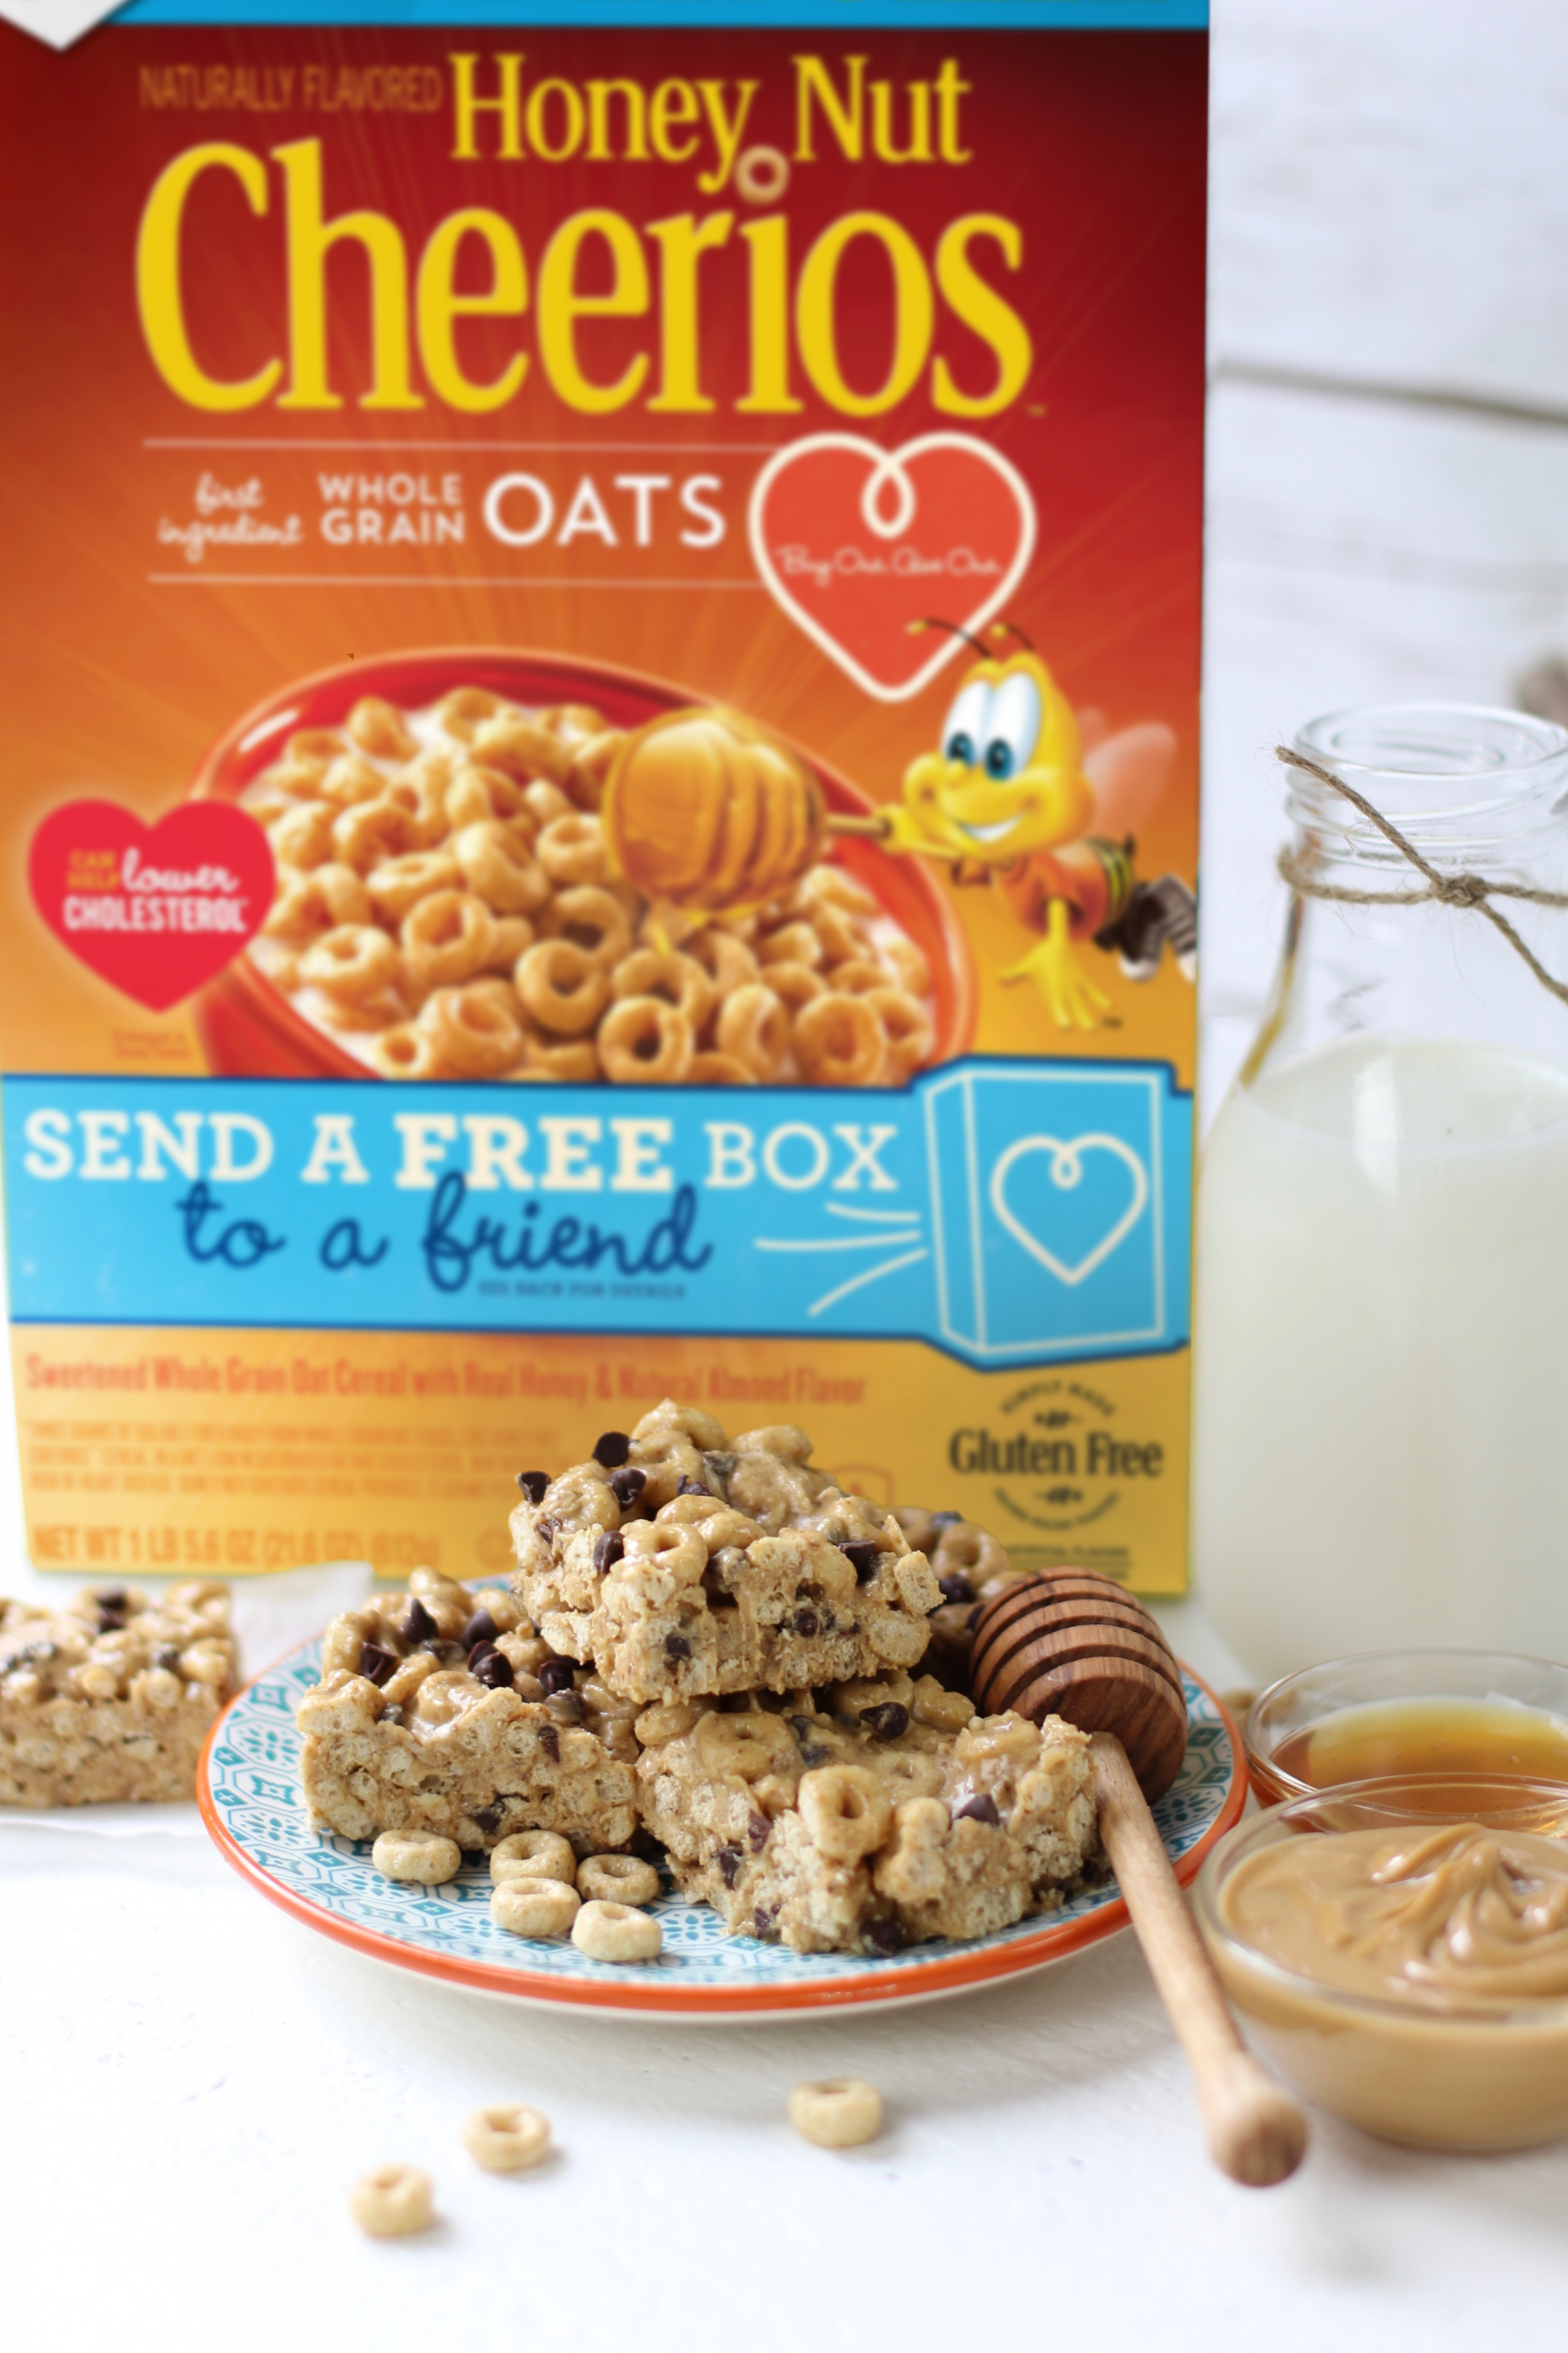 Box on Honey Nut Cheerios with Protein Bites and milk in front of it